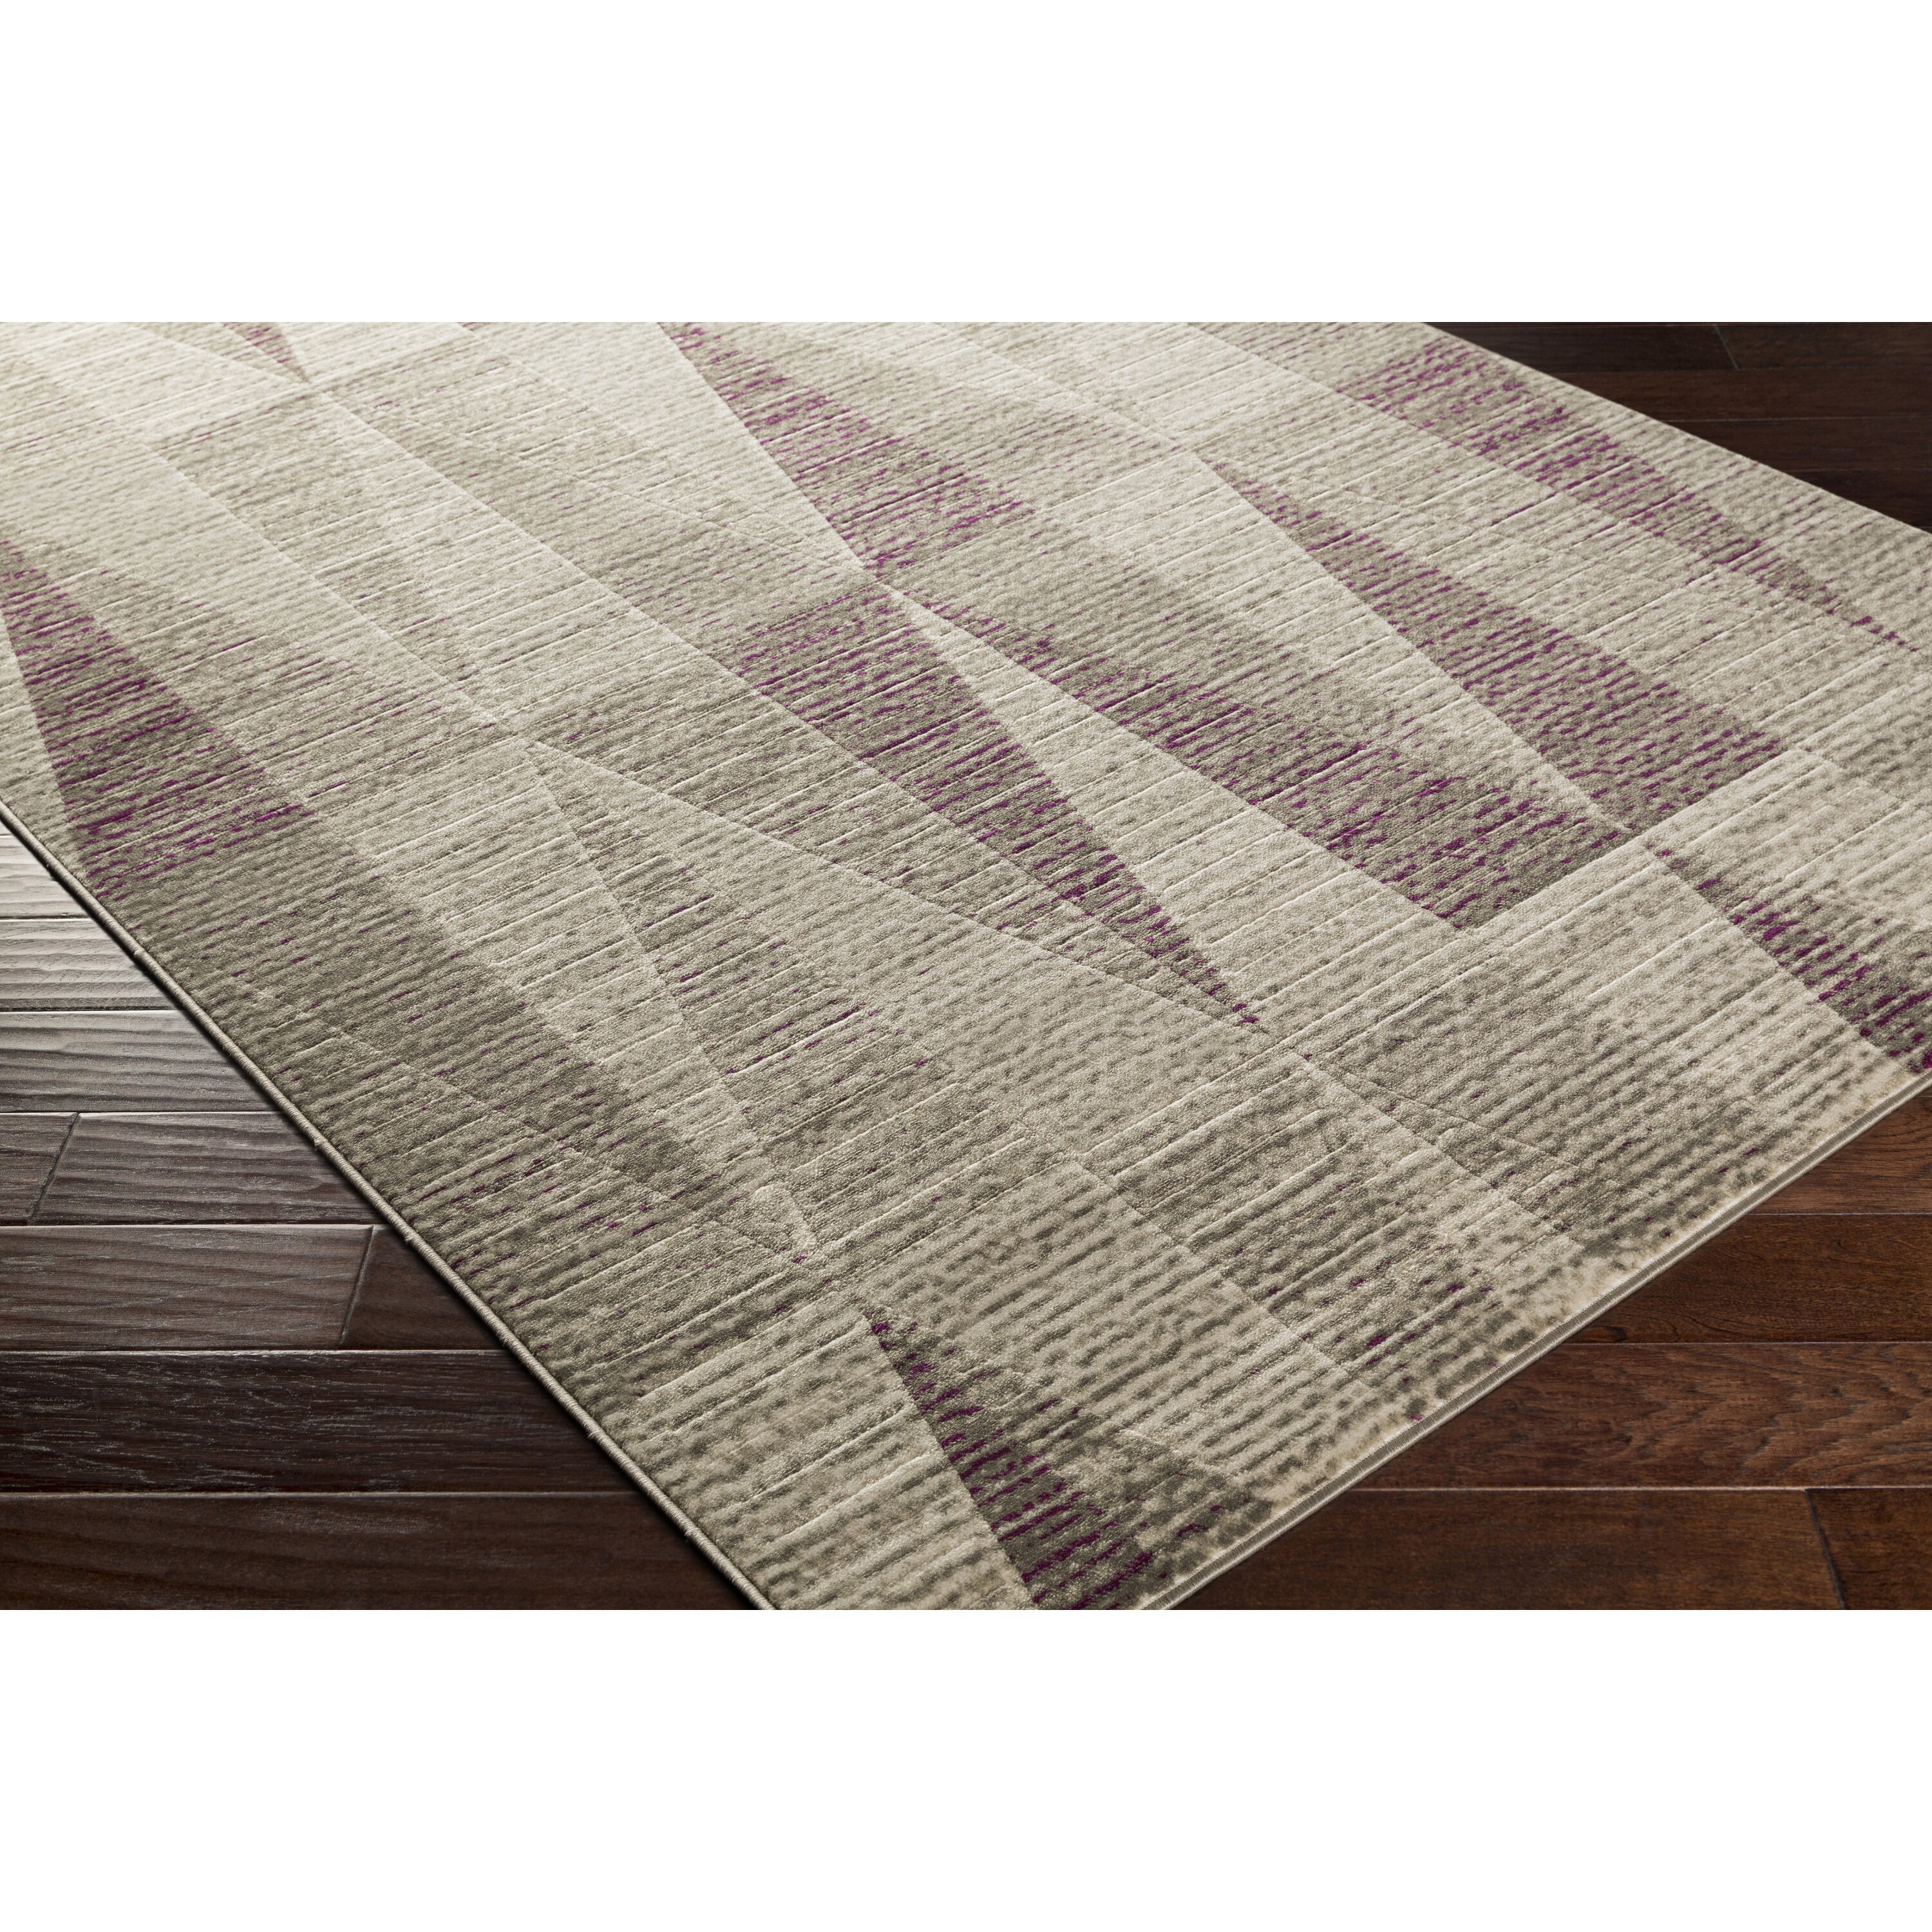 Langley Street Lundgren Light Grey/Eggplant Area Rug